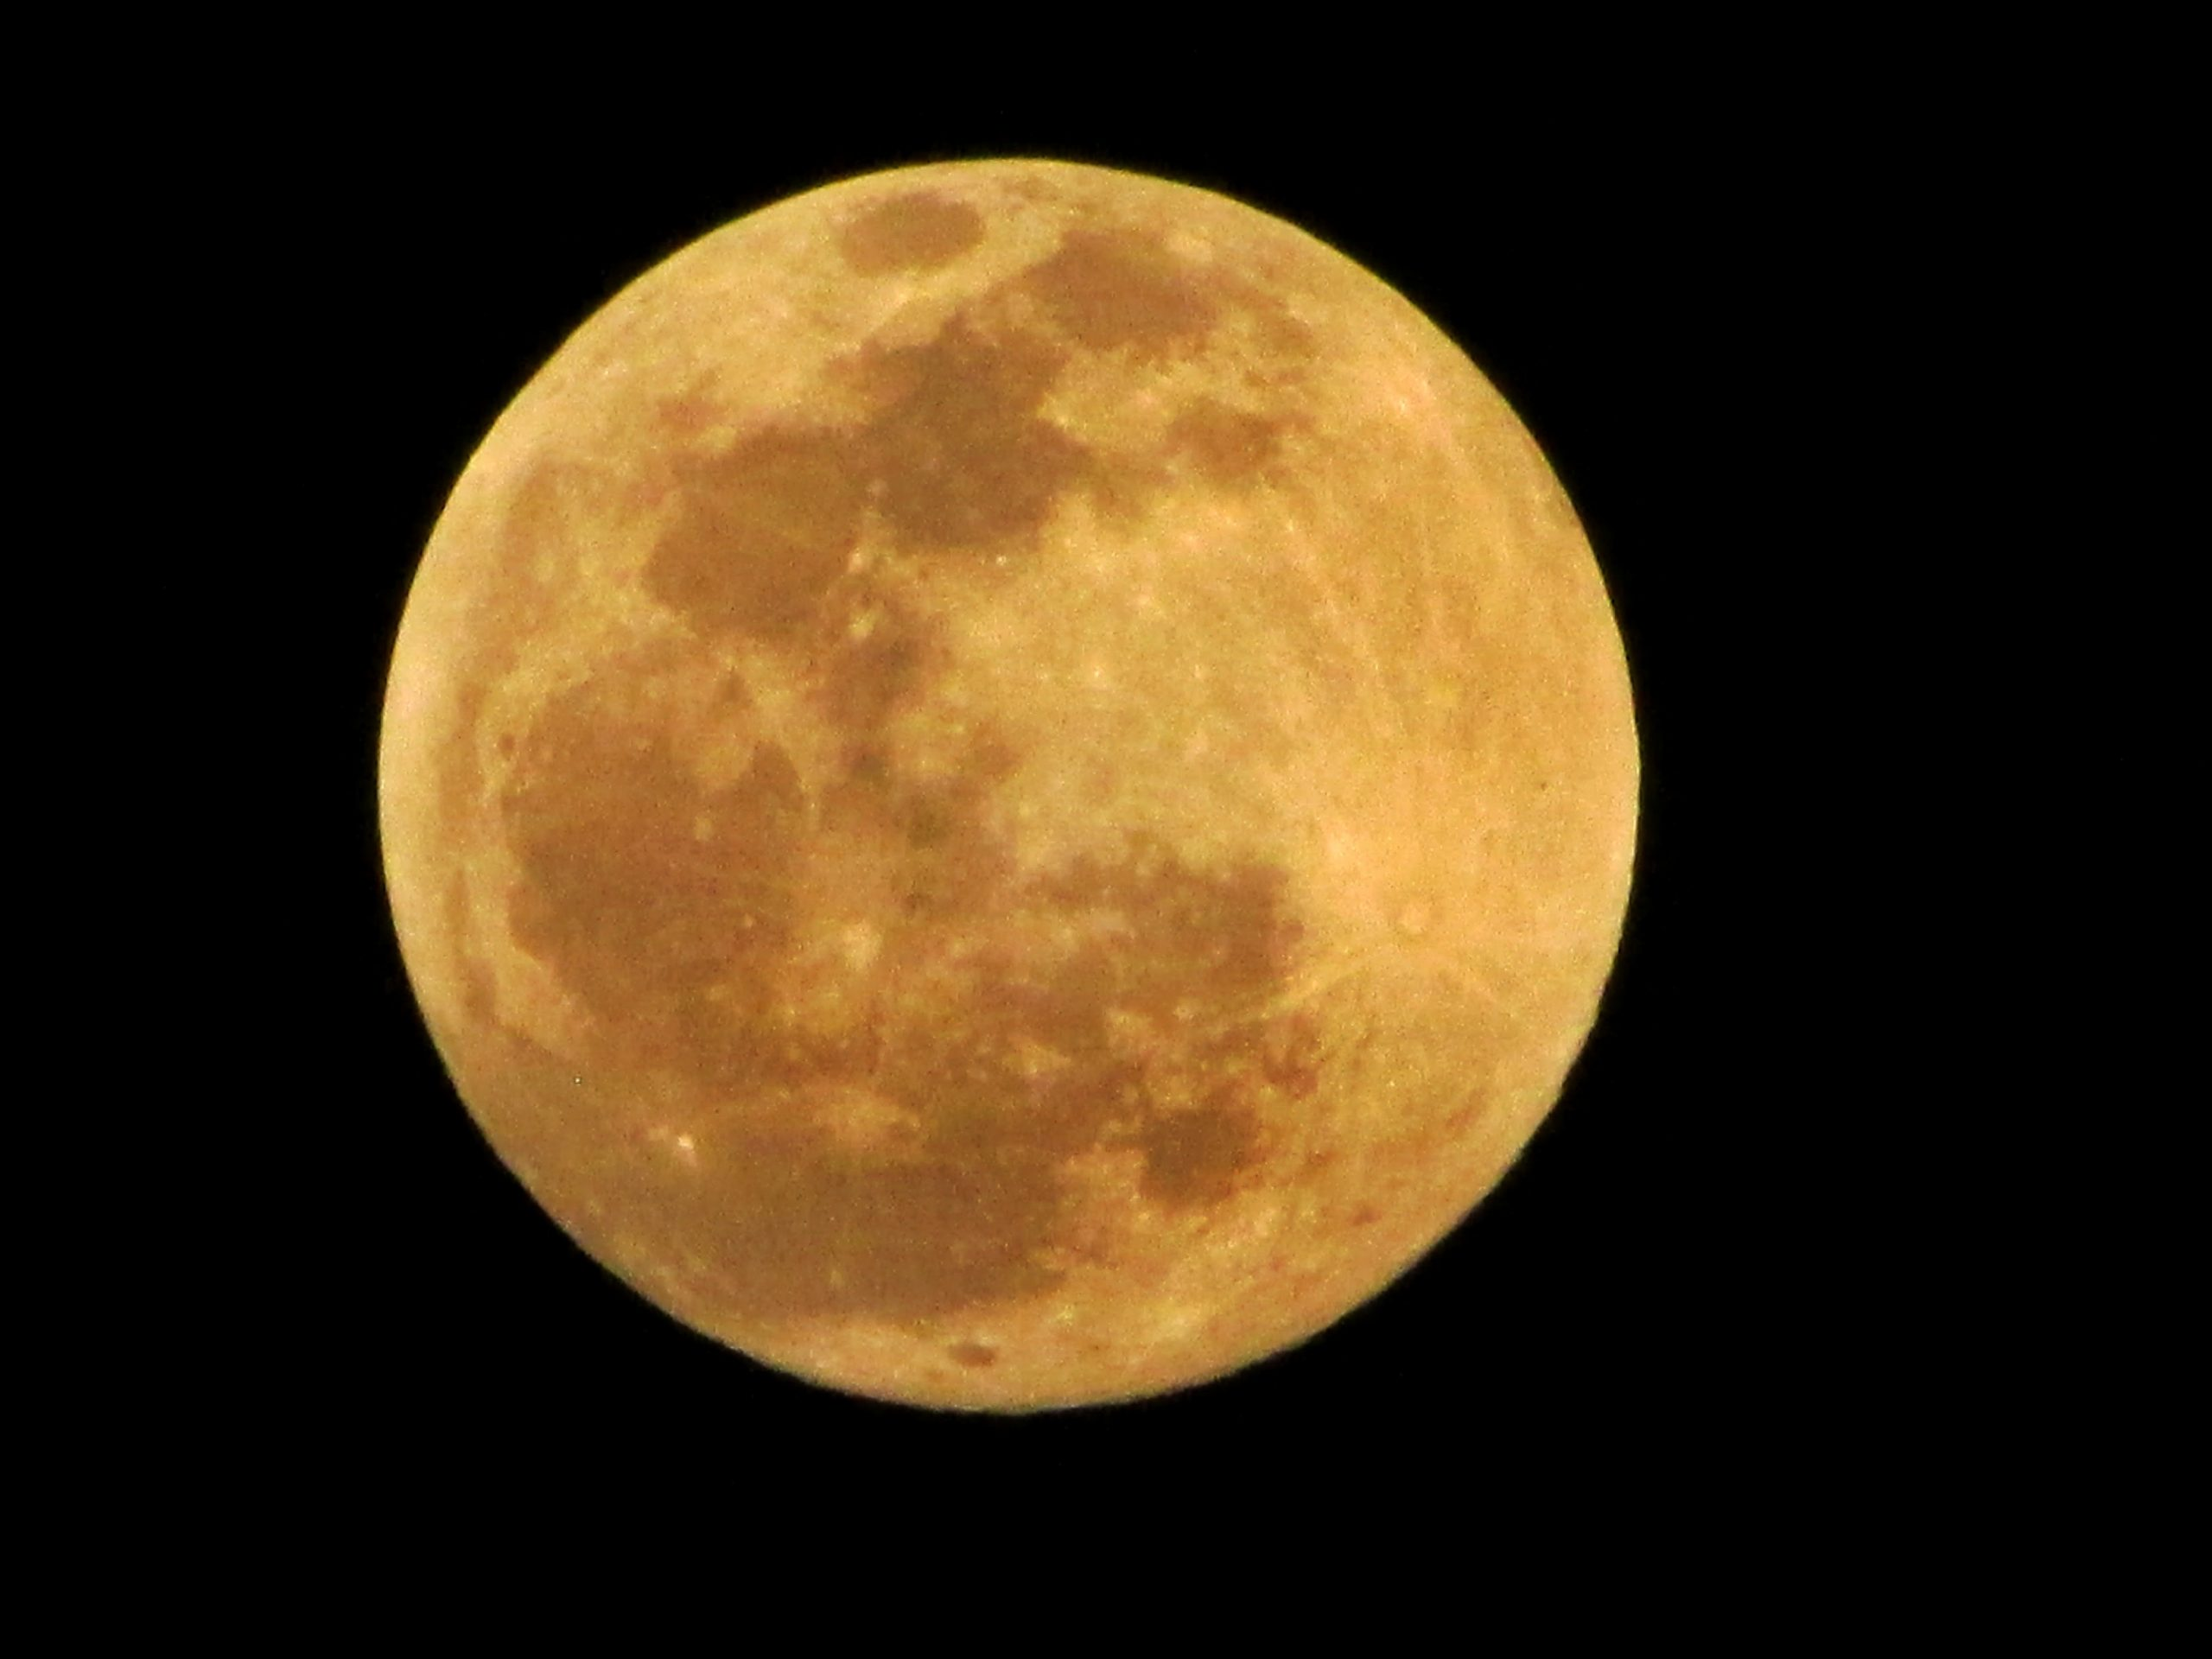 Close up of full moon